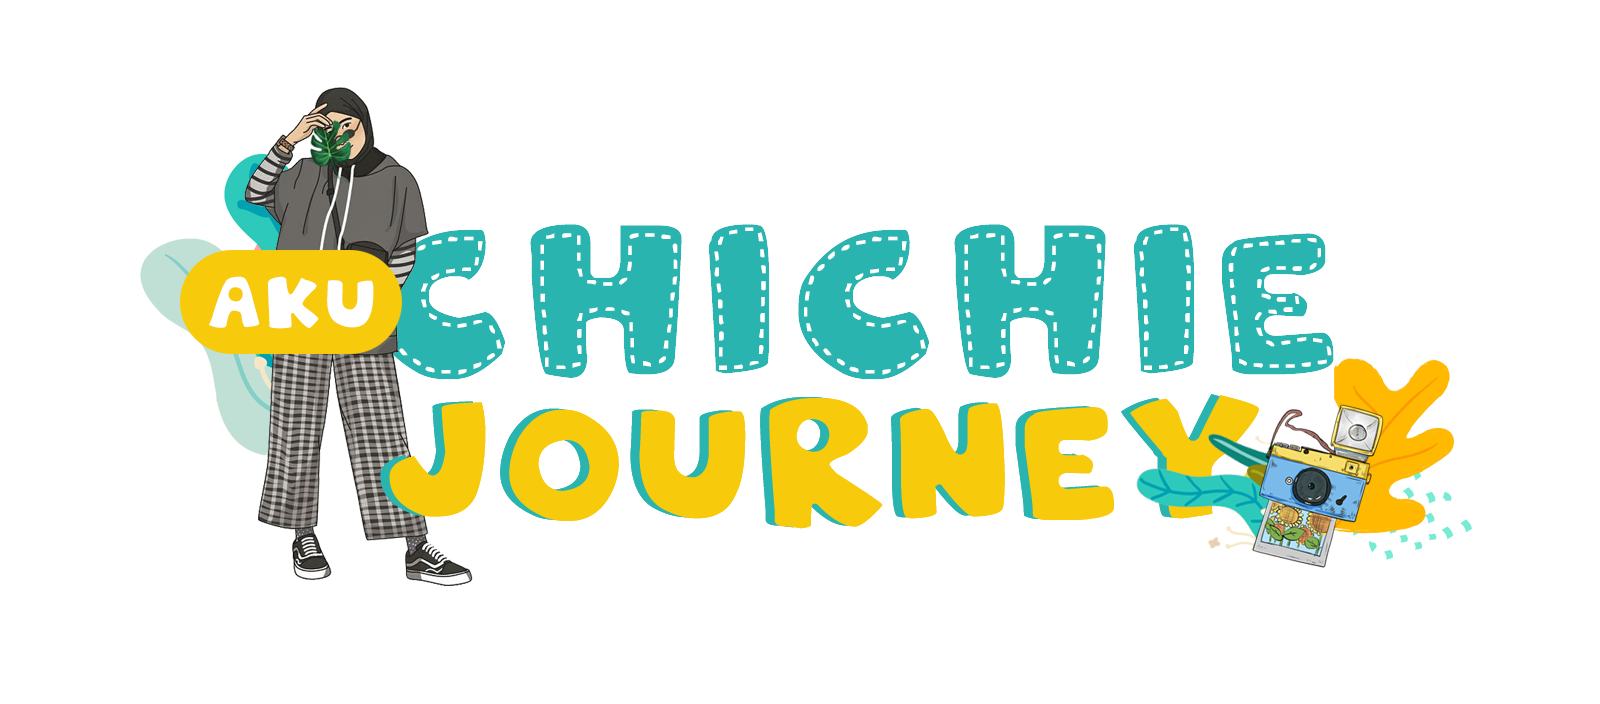 akuchichie journey